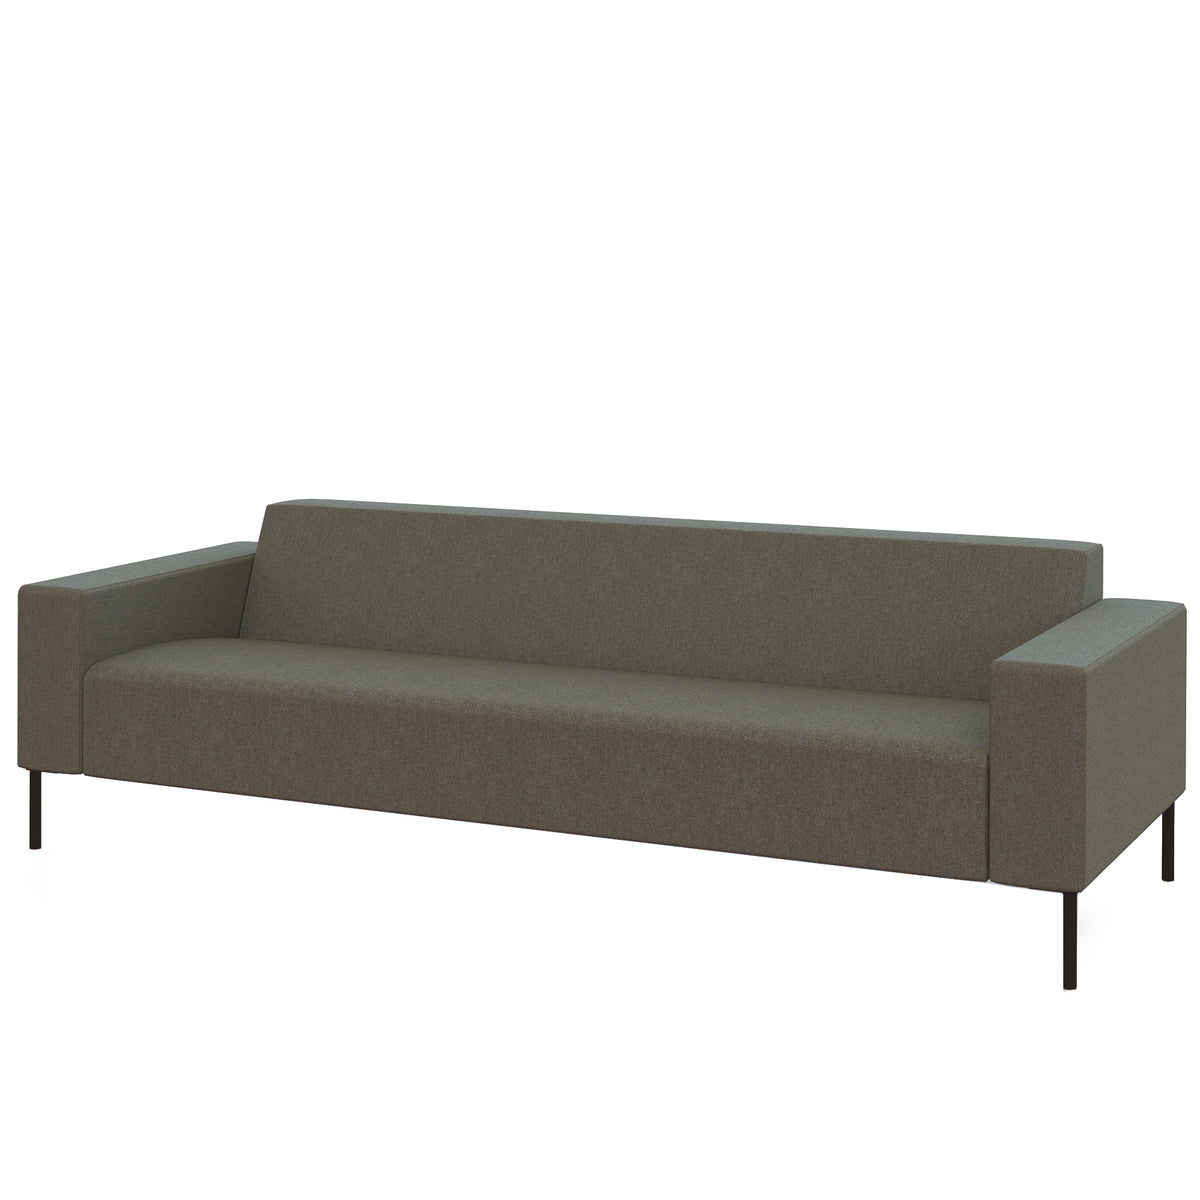 Hitch Mylius HM18 Origin Three Seat Sofa Black Legs Camden